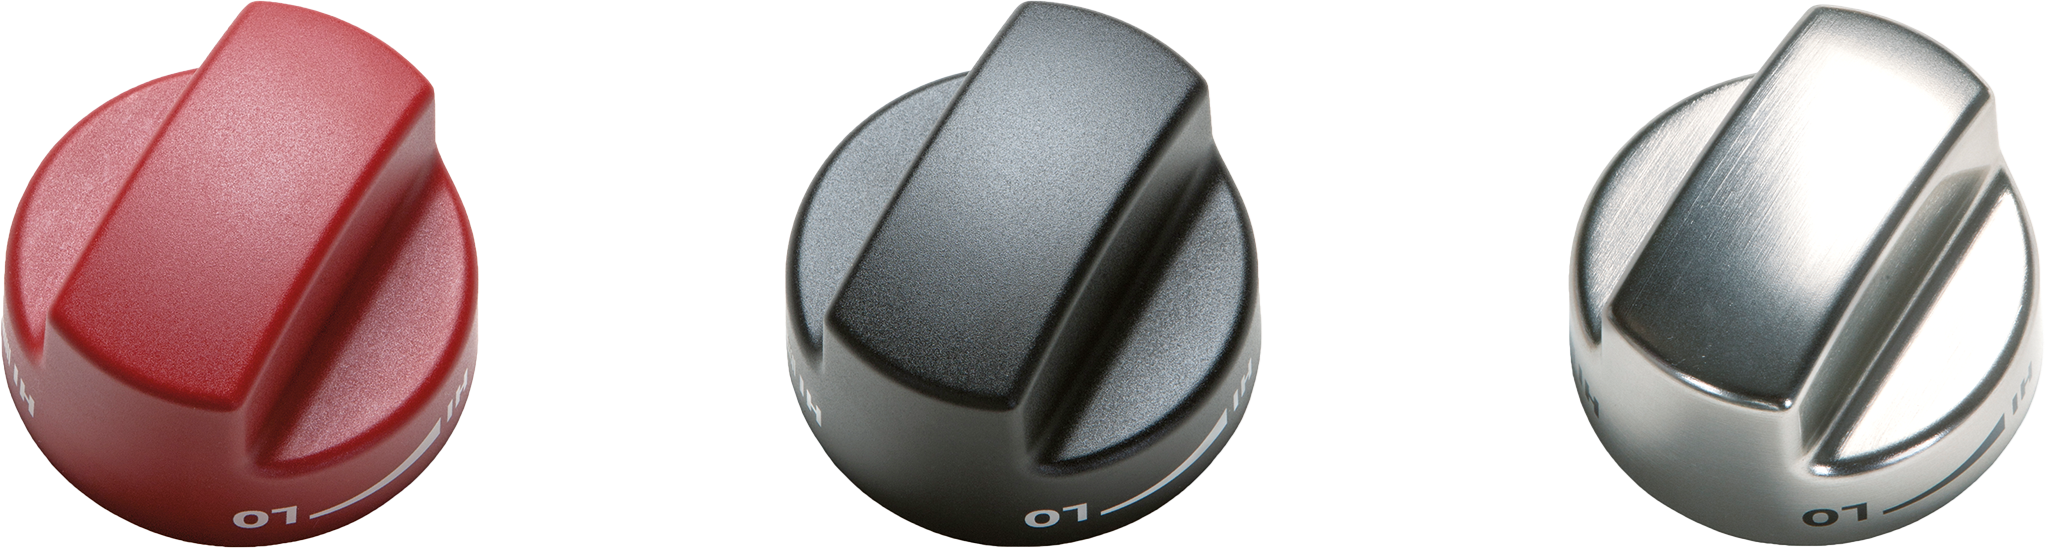 stove knobs. Gas Range Knobs - Sizes And Colors Available Stove